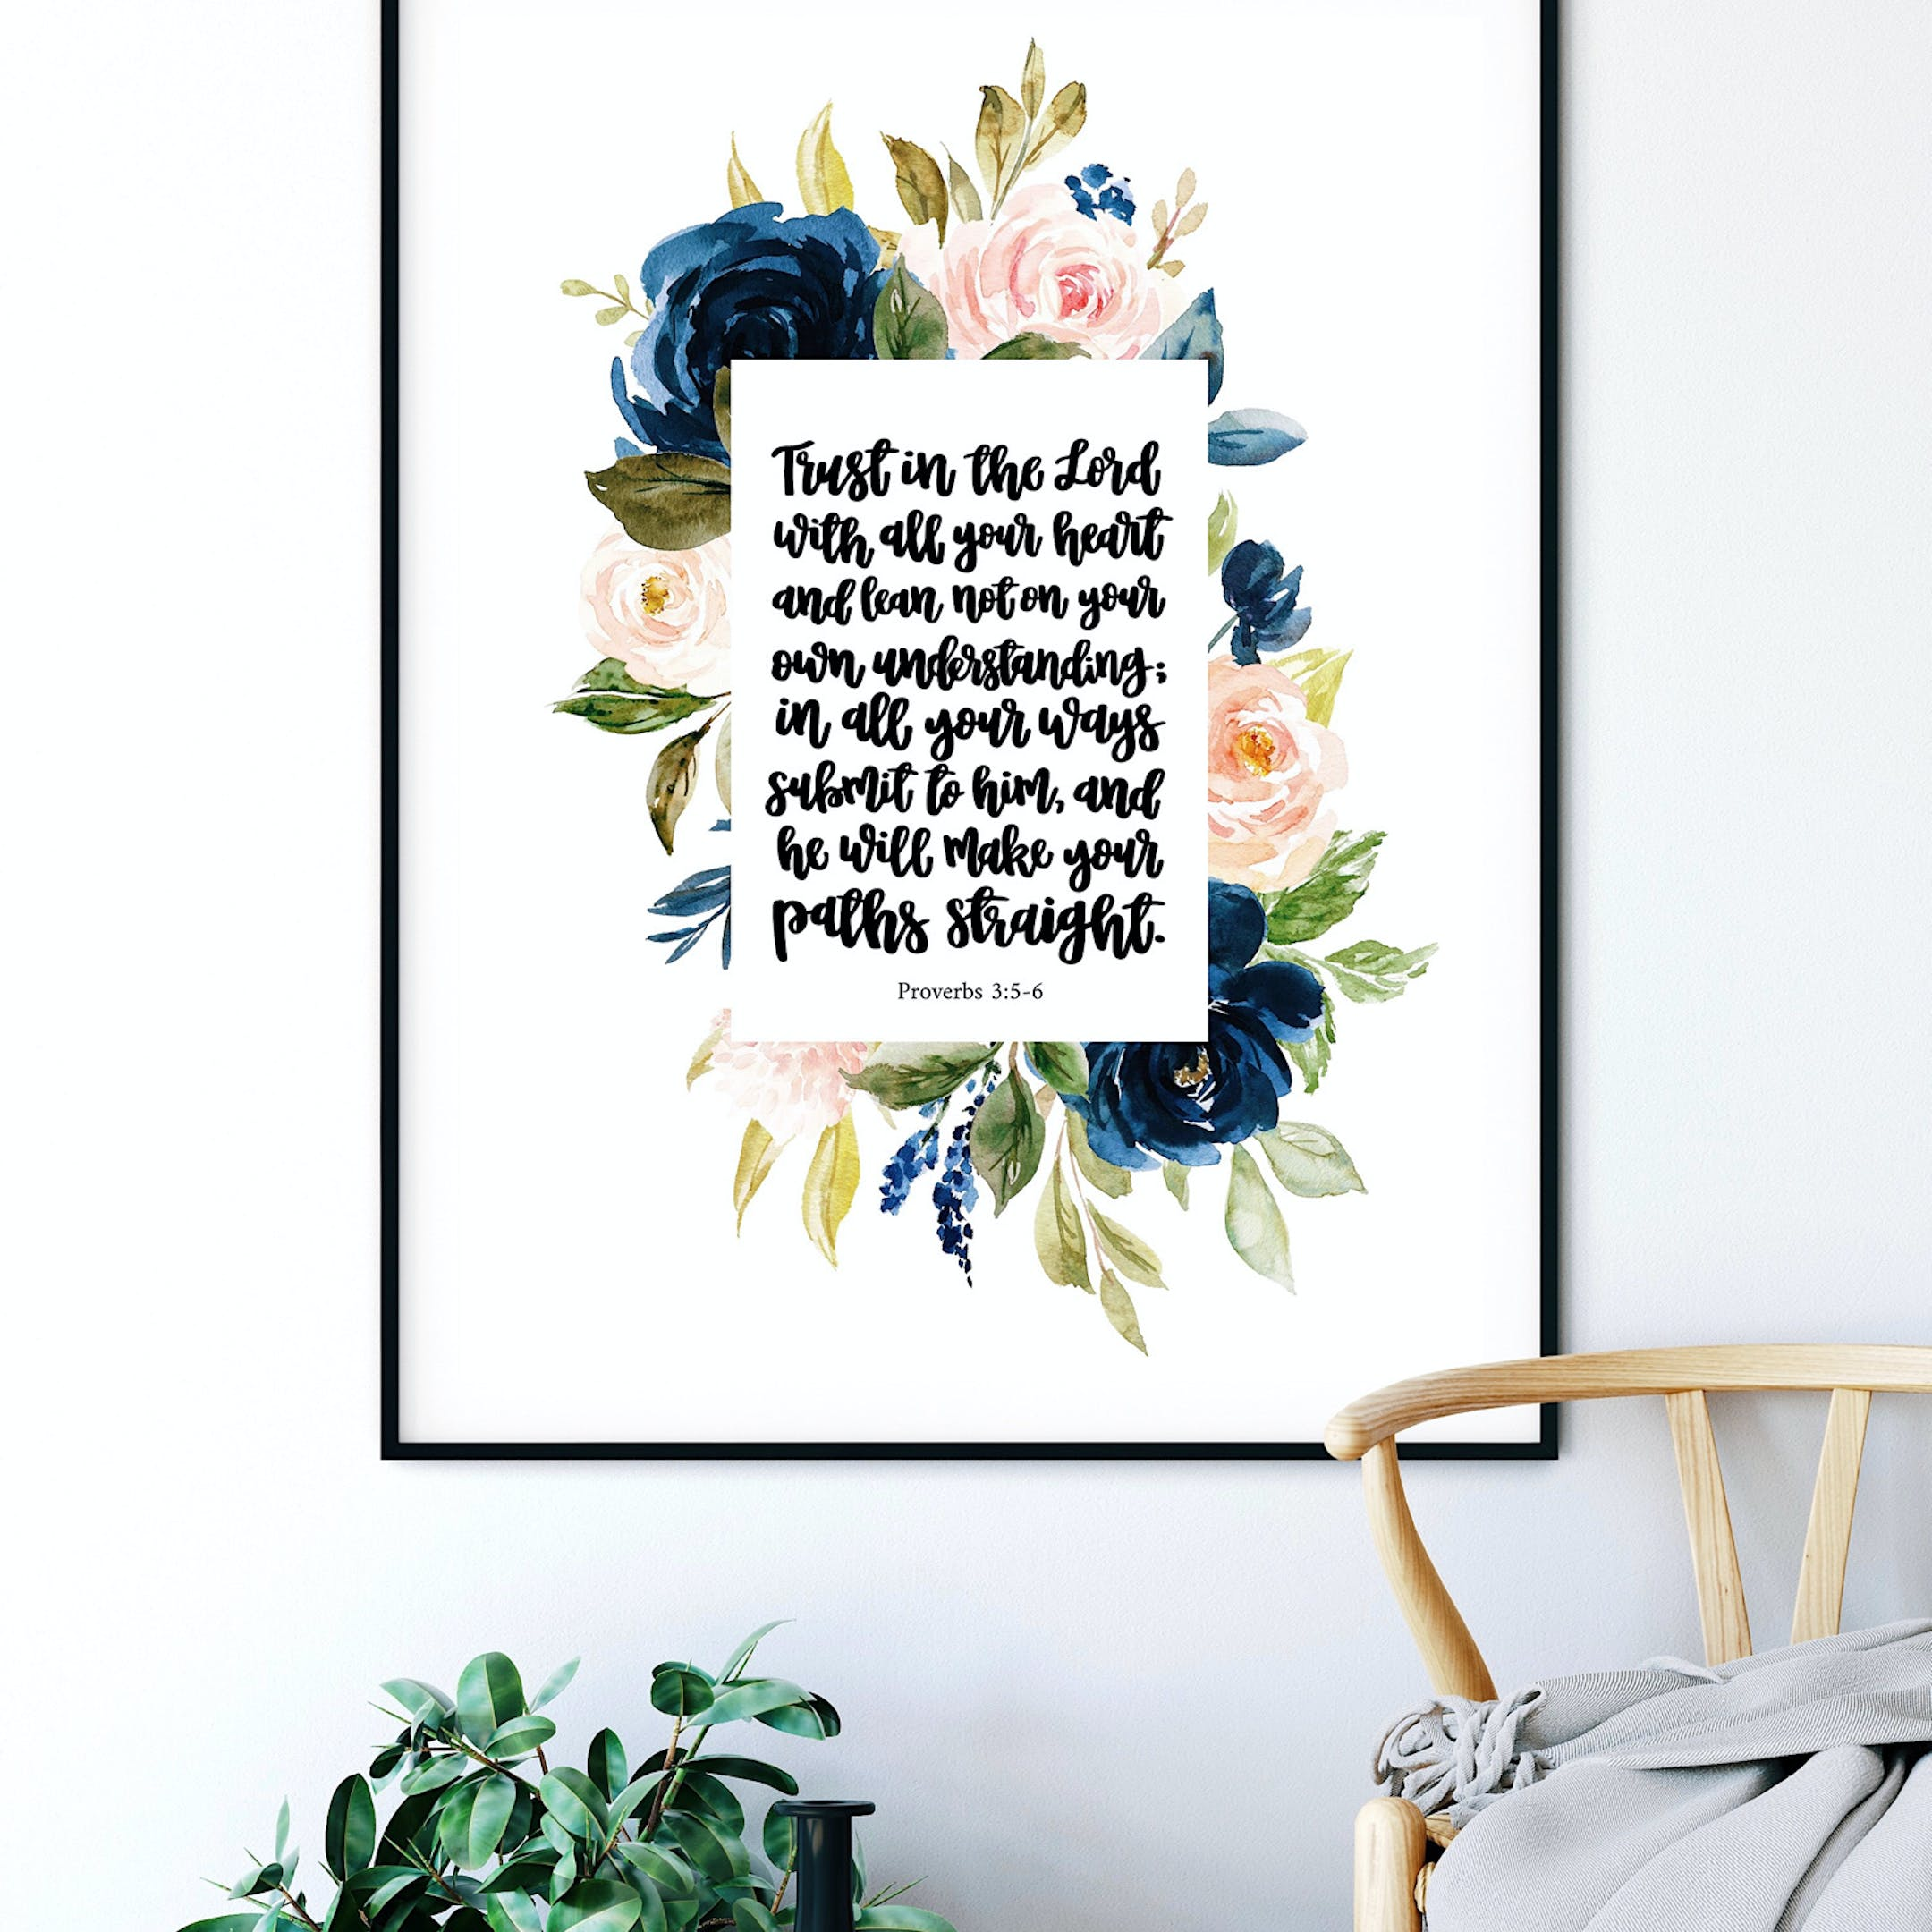 Proverbs 3:5-6 Floral Print - Trust In The Lord - Izzy & Pop